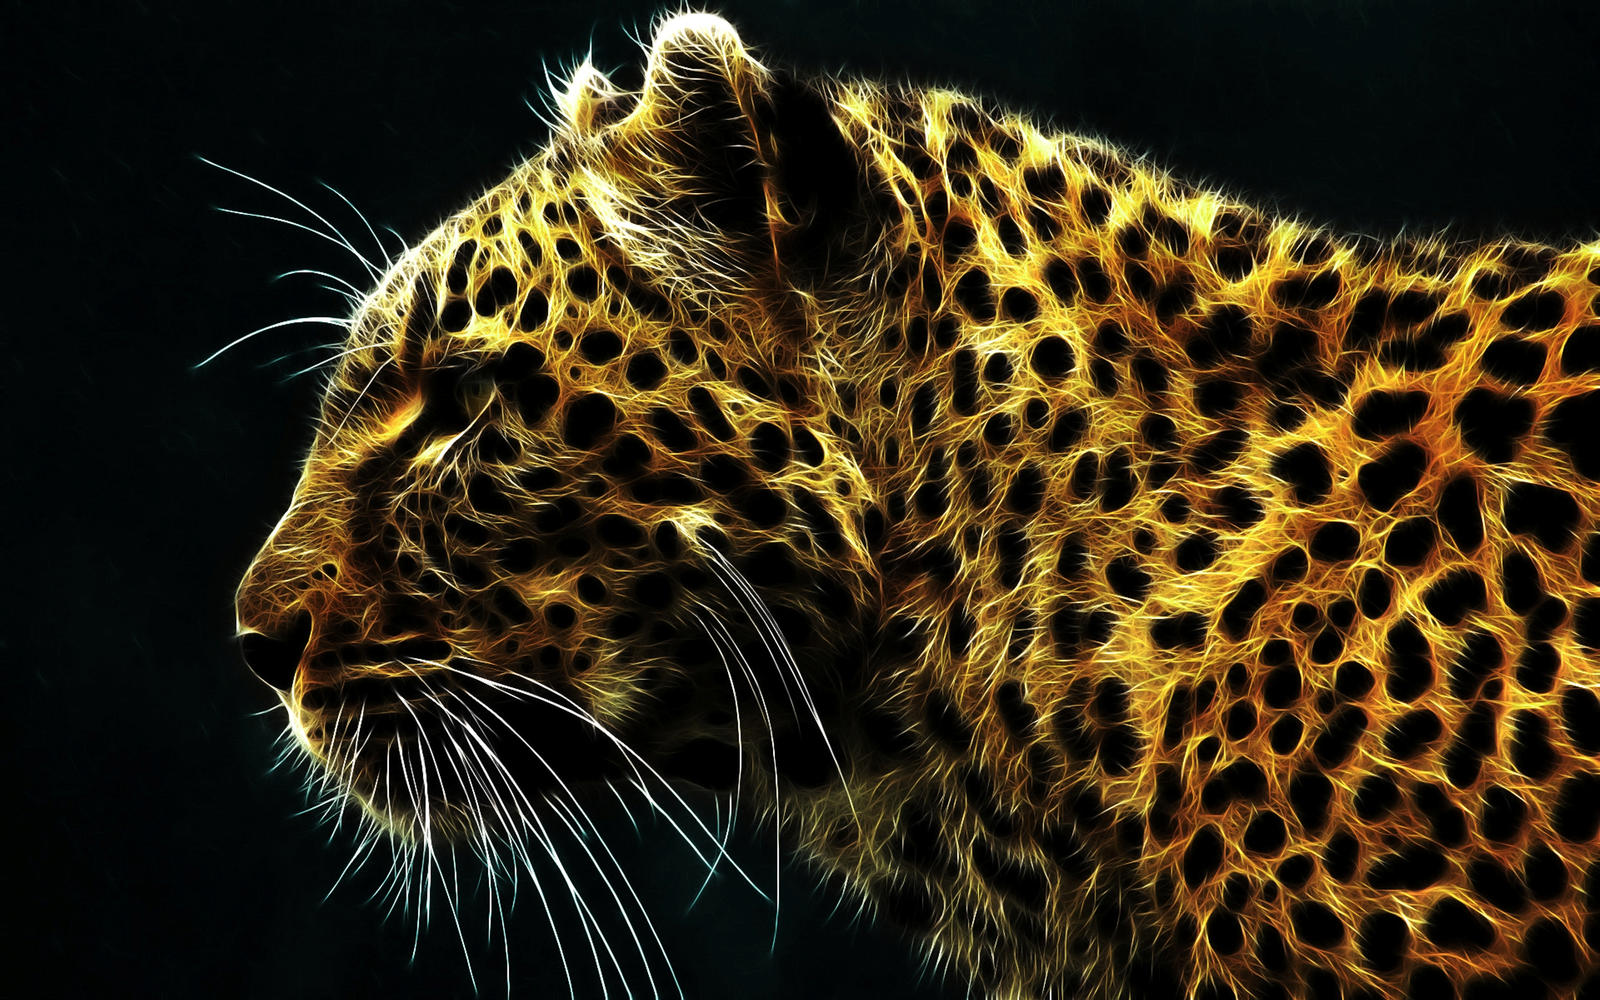 Cheetah In Hd By Deeprana94 On Deviantart